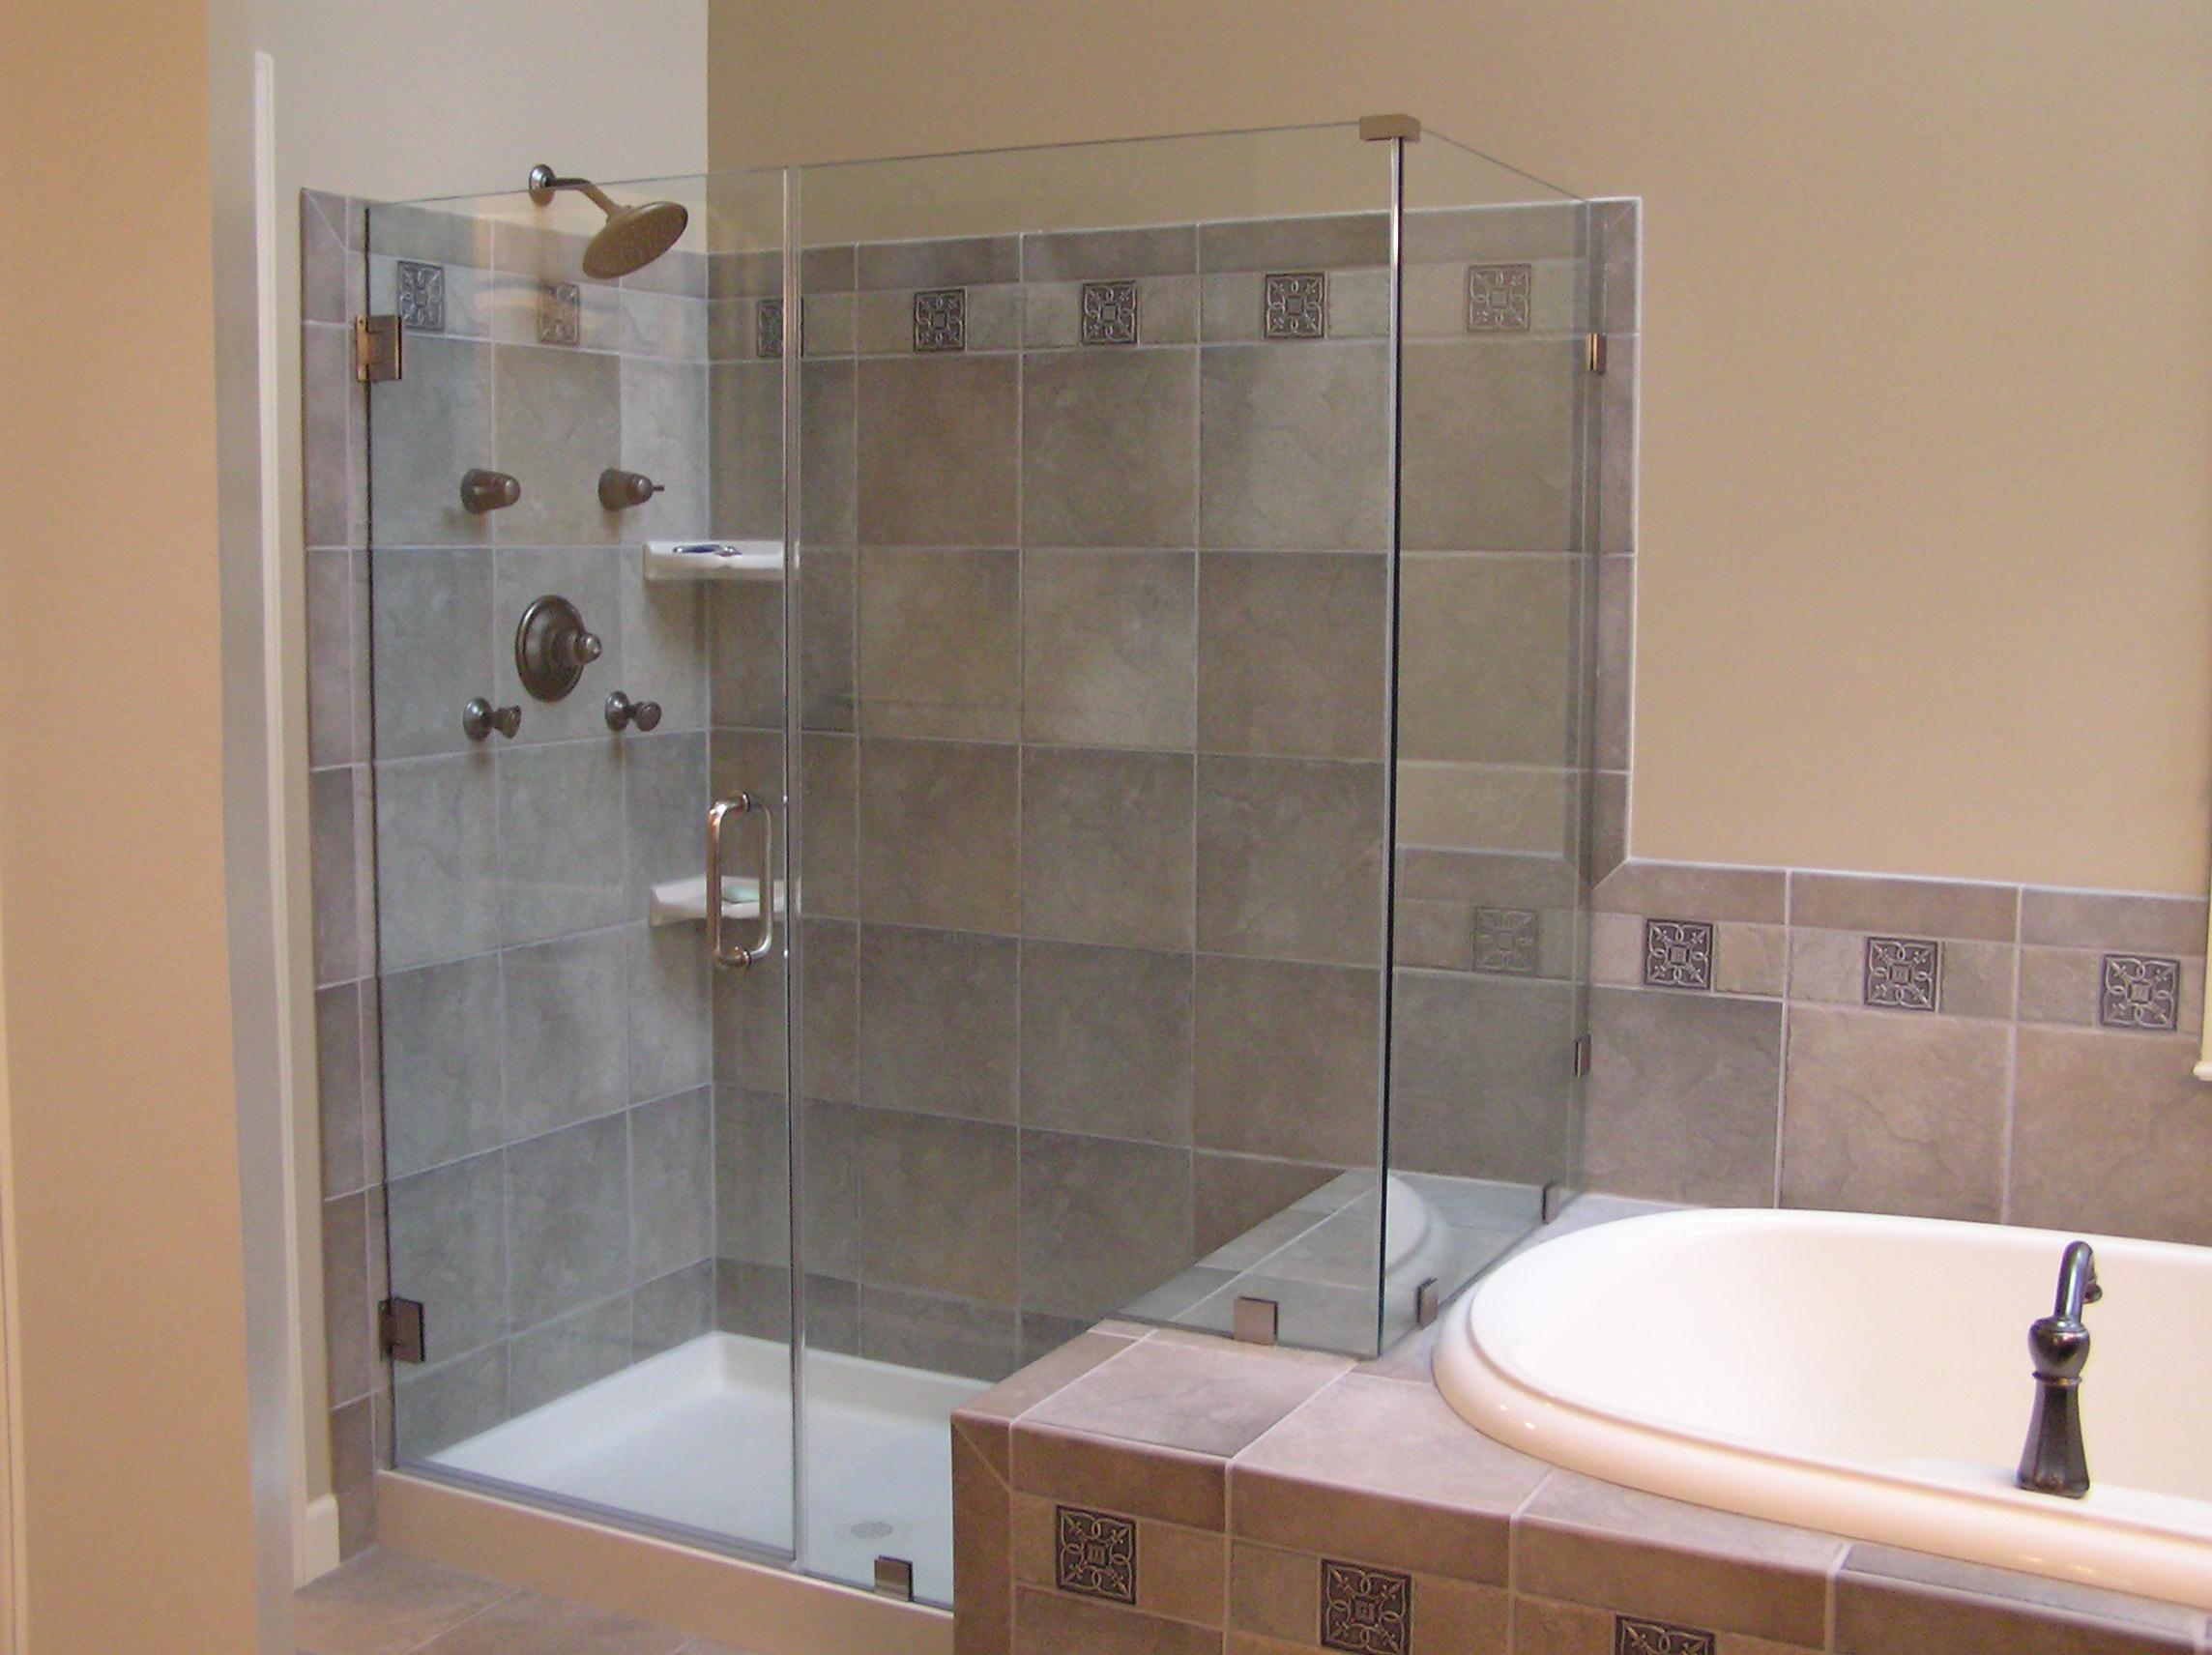 Remodel Bathroom shower bathroom remodeling Looking For Bathroom Remodeling Contractors In Wilmington De